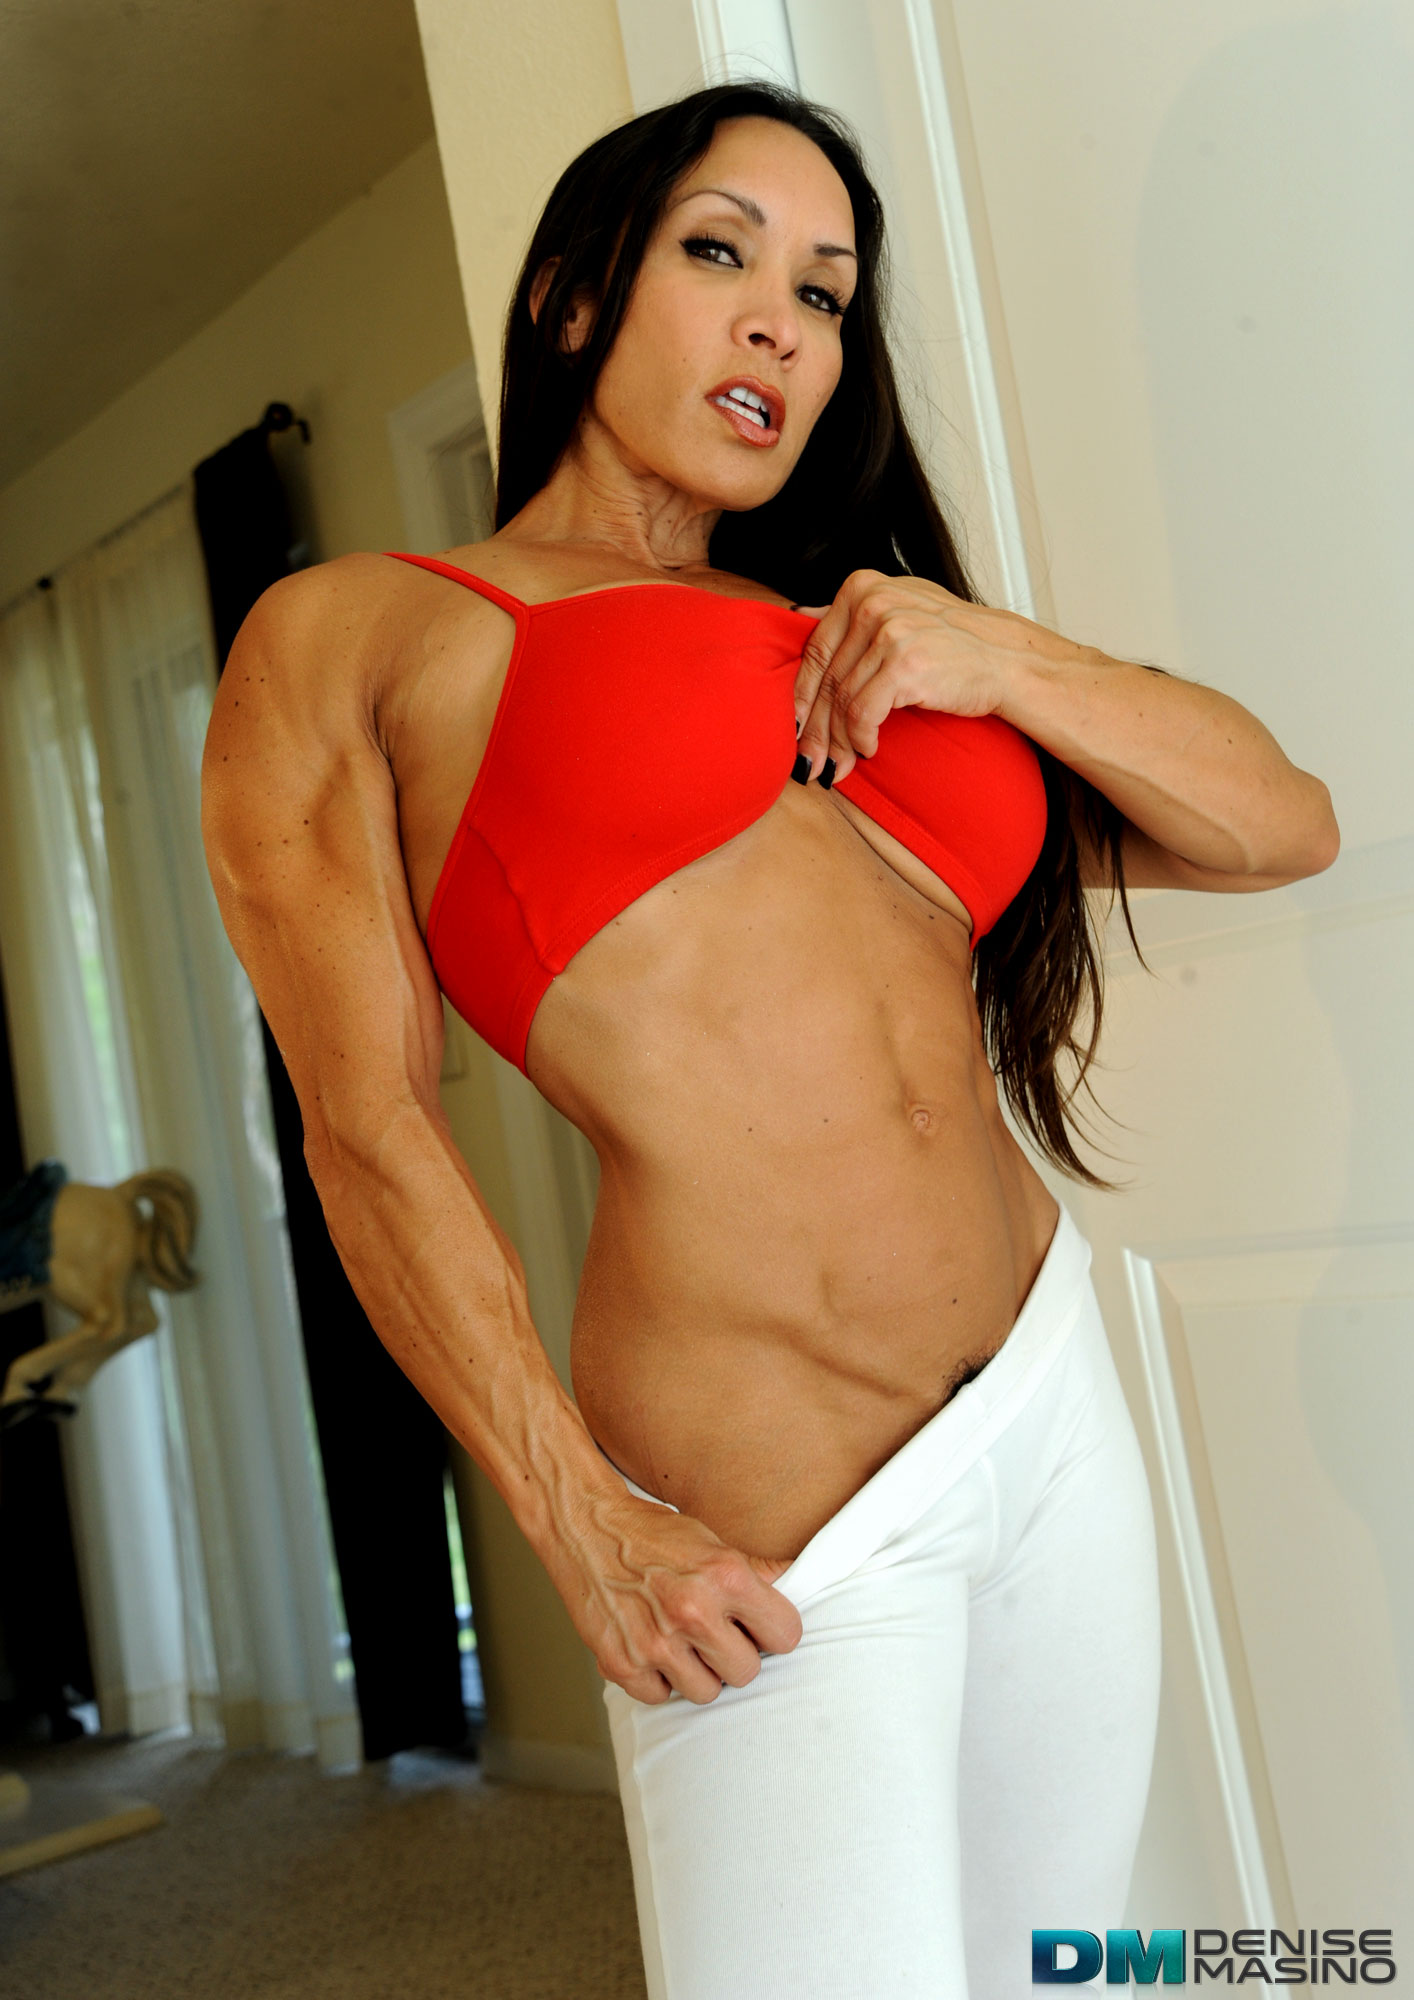 Denise Masino Bulging White Leggins